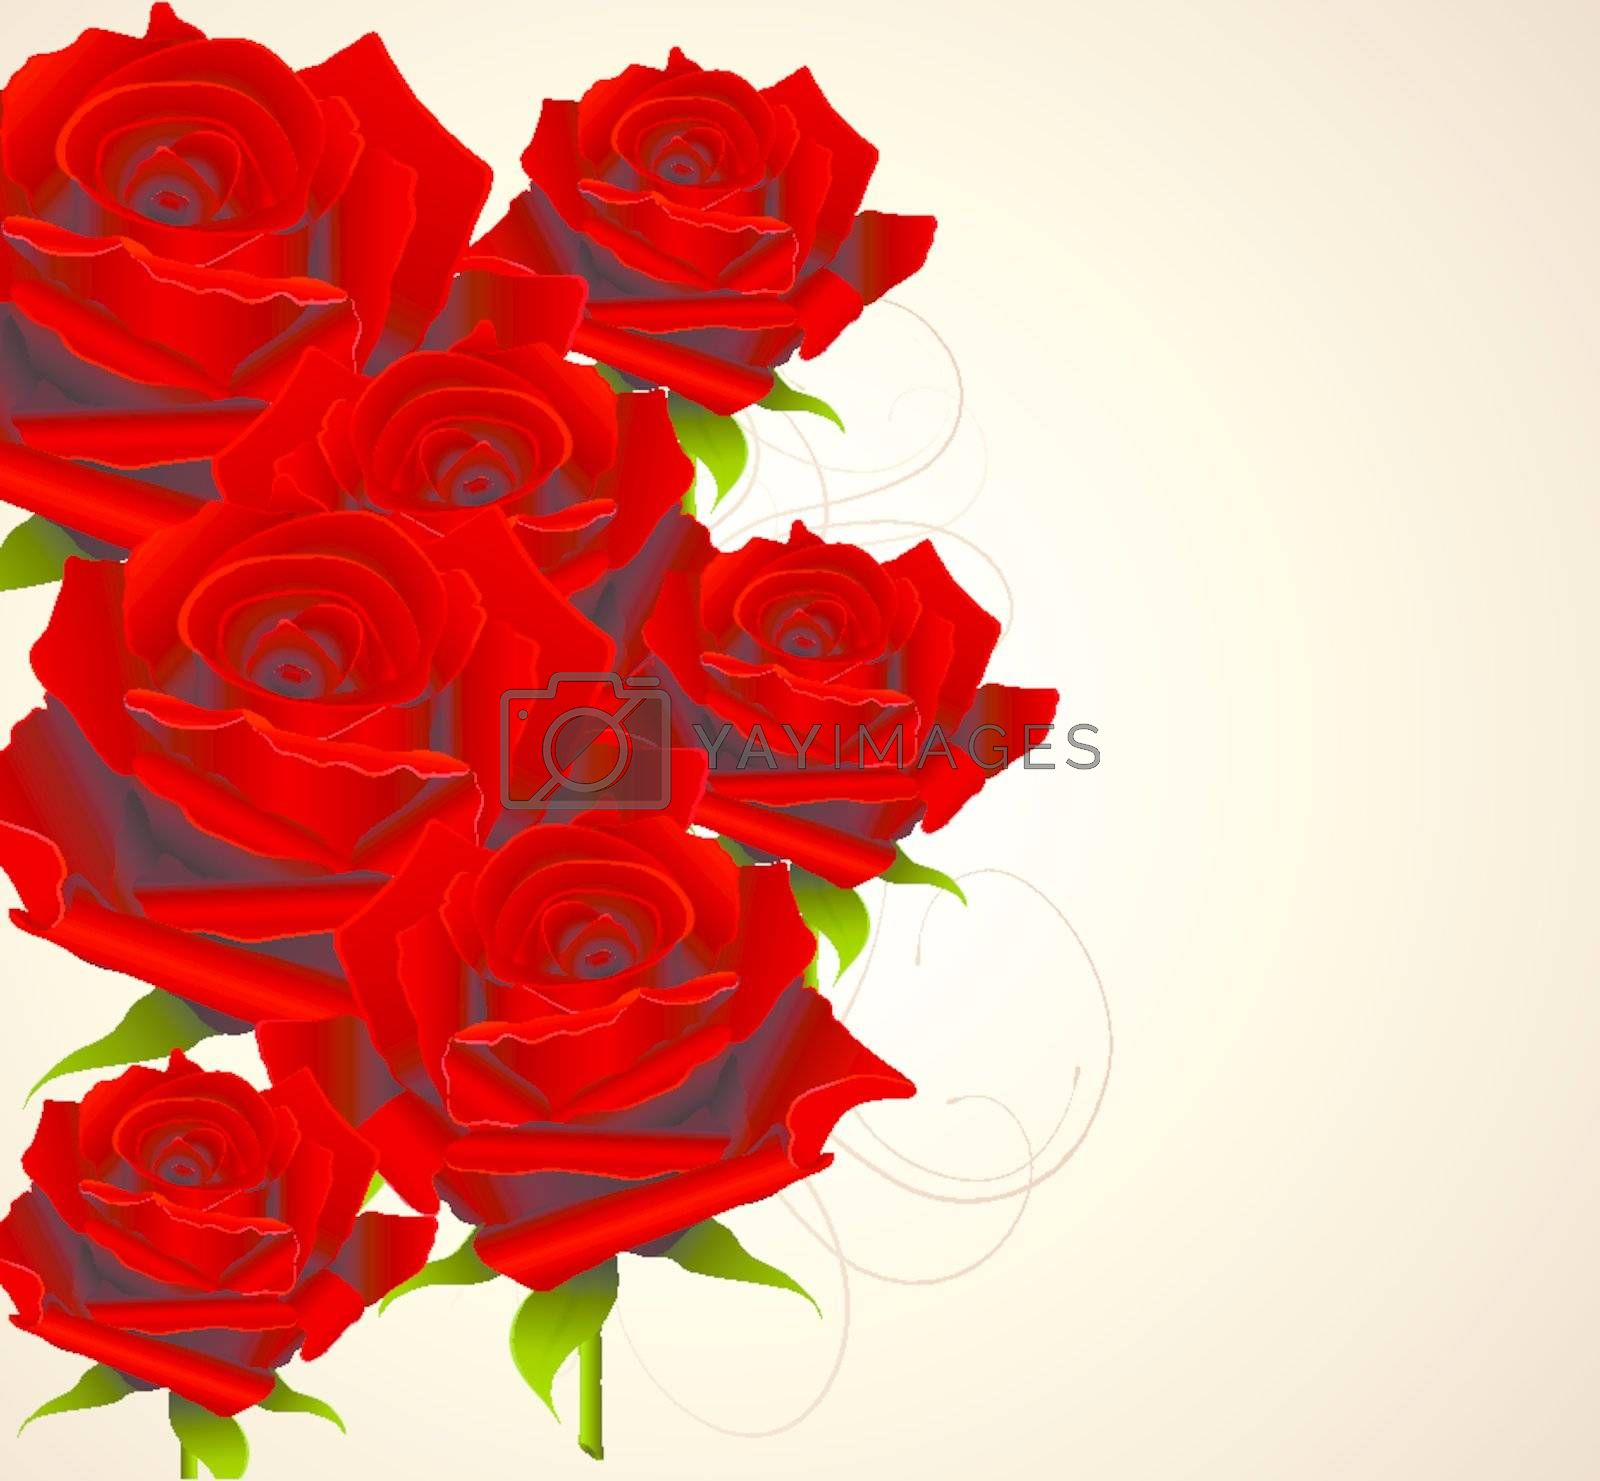 Elegant background with roses, vector illustration.